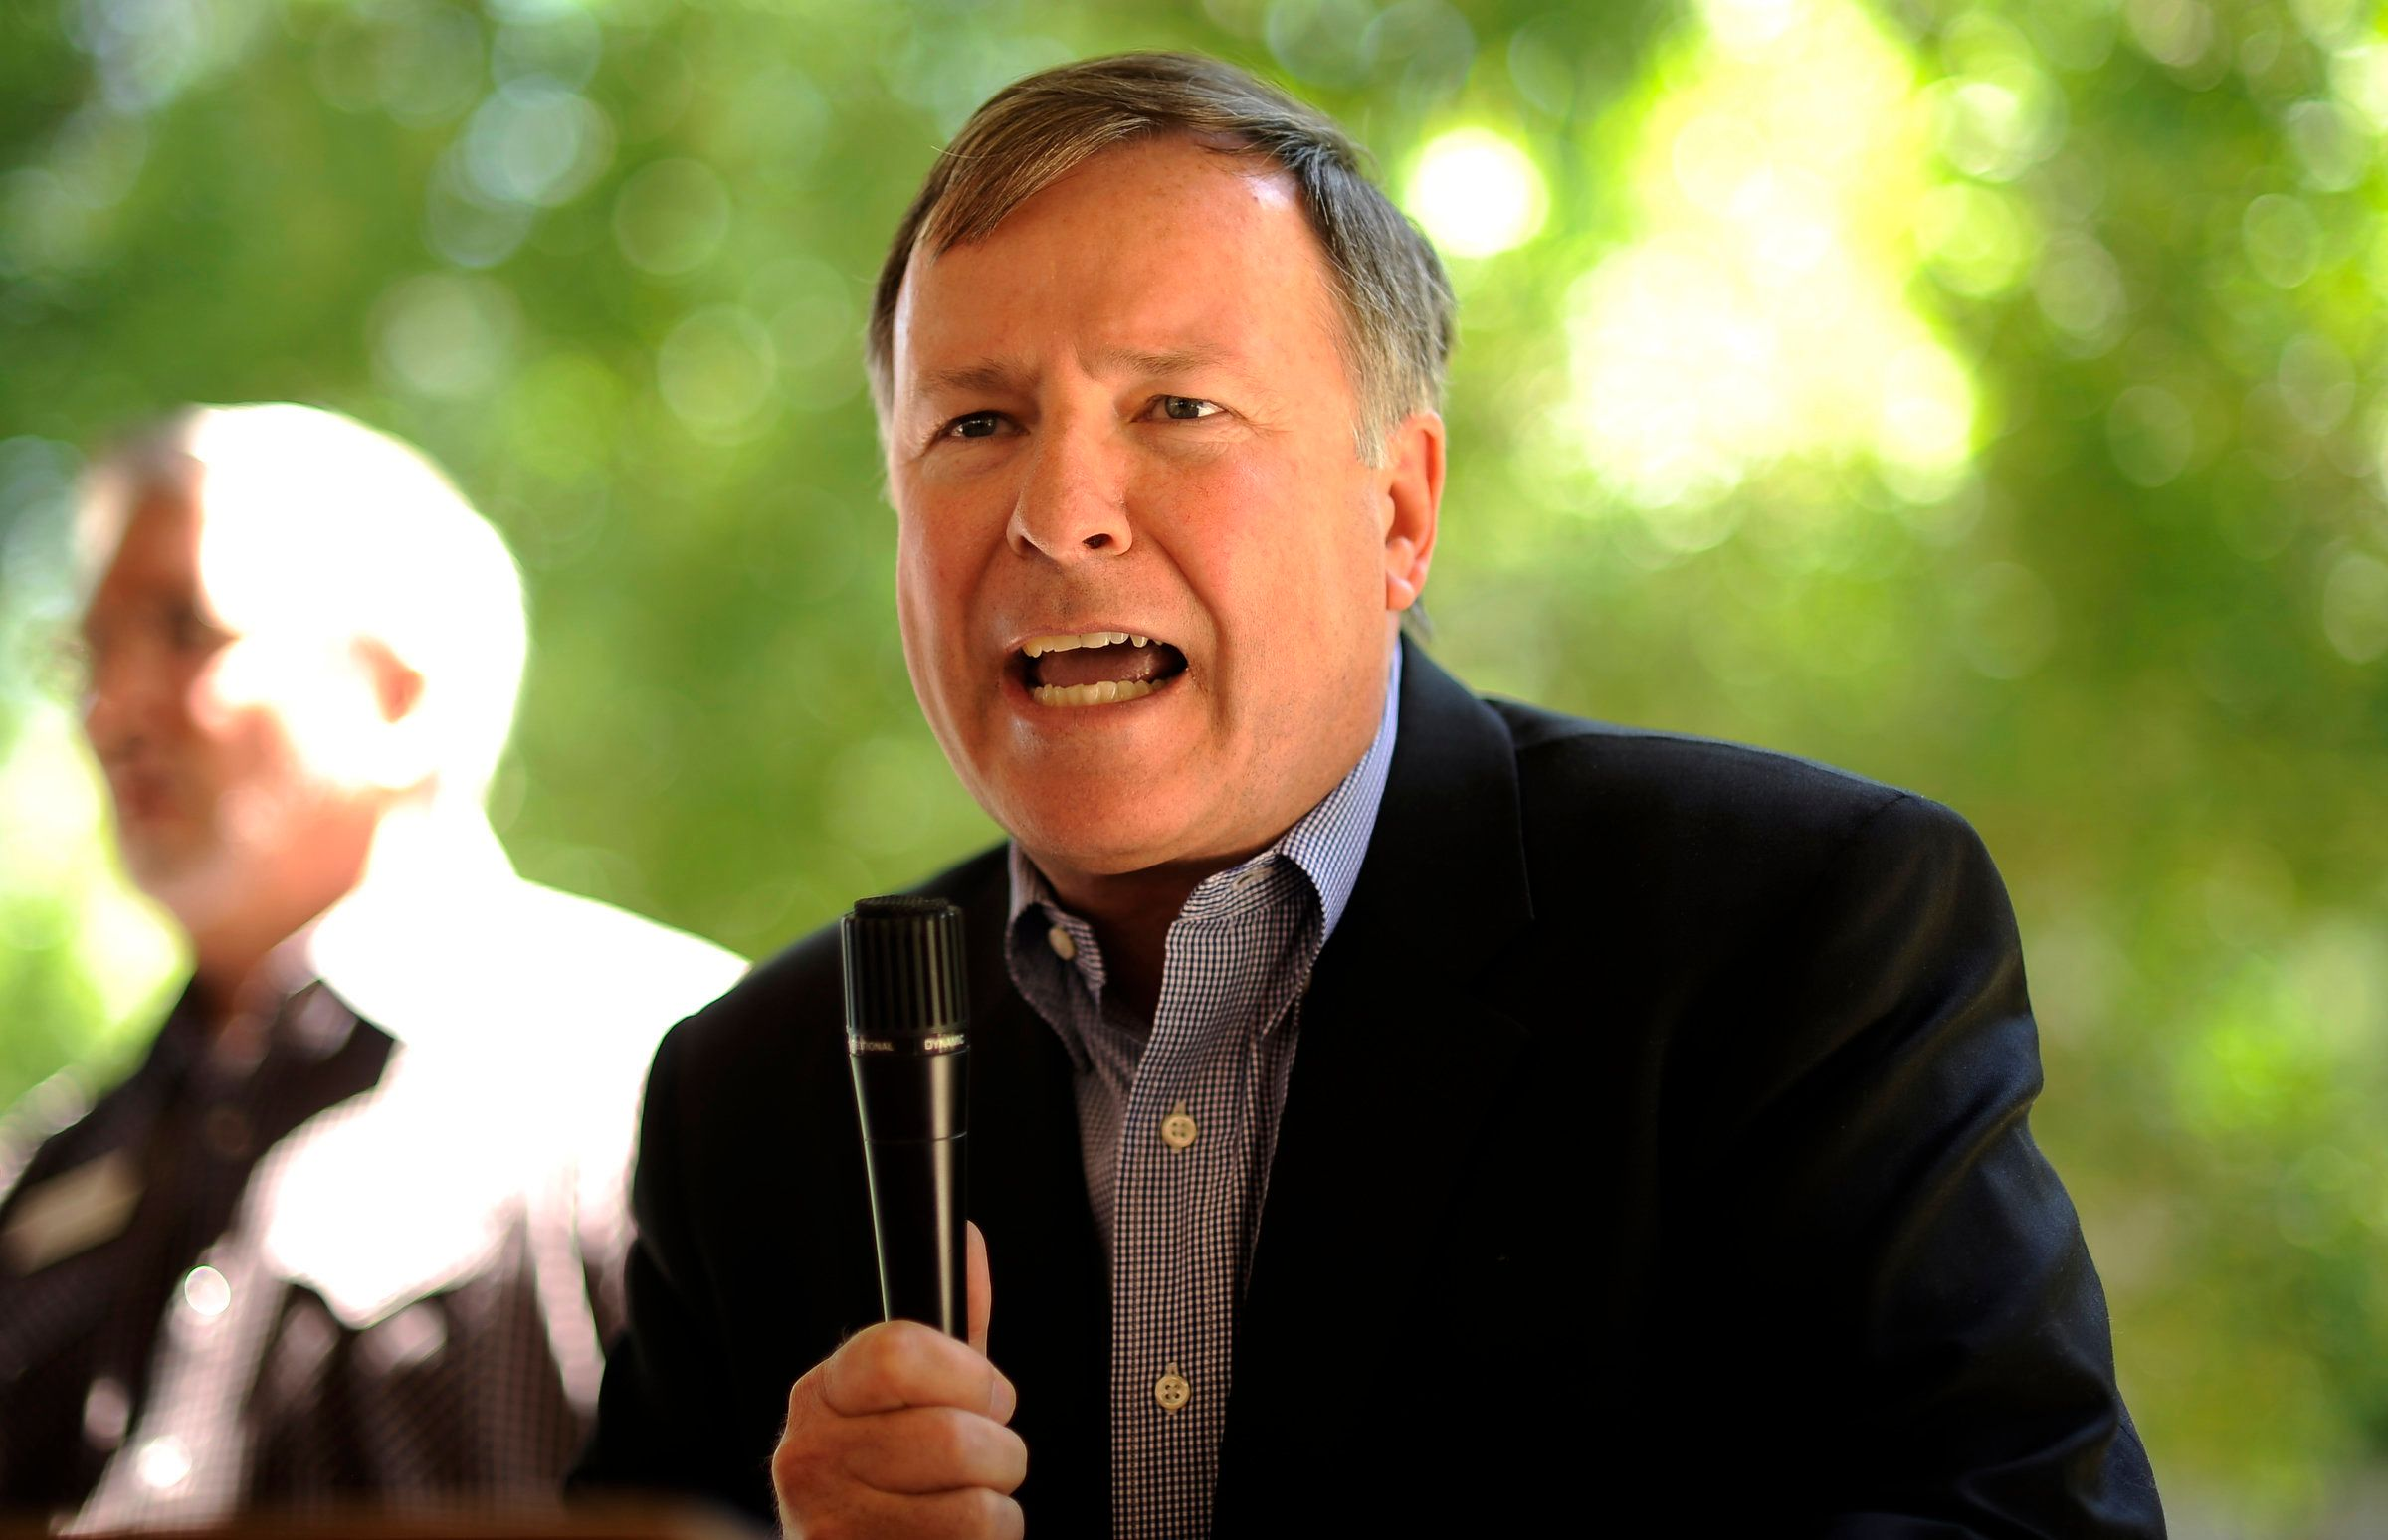 Rep. Doug Lamborn (R-Colo.) won't be listed on the ballot for the Republican primary this year.